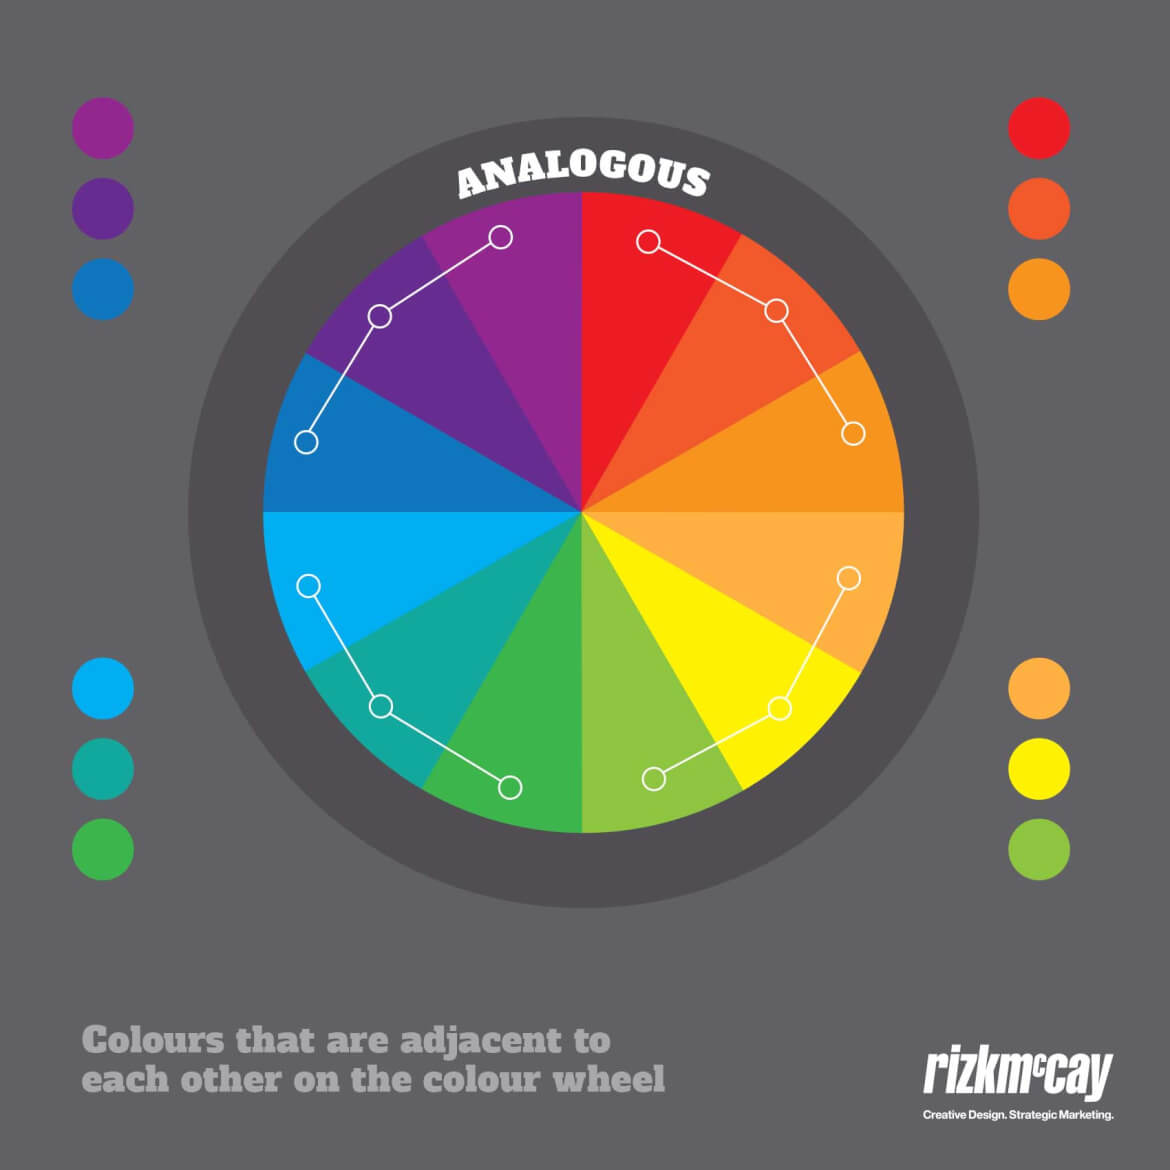 Analogous colour wheel - colours that are adjacent in the wheel